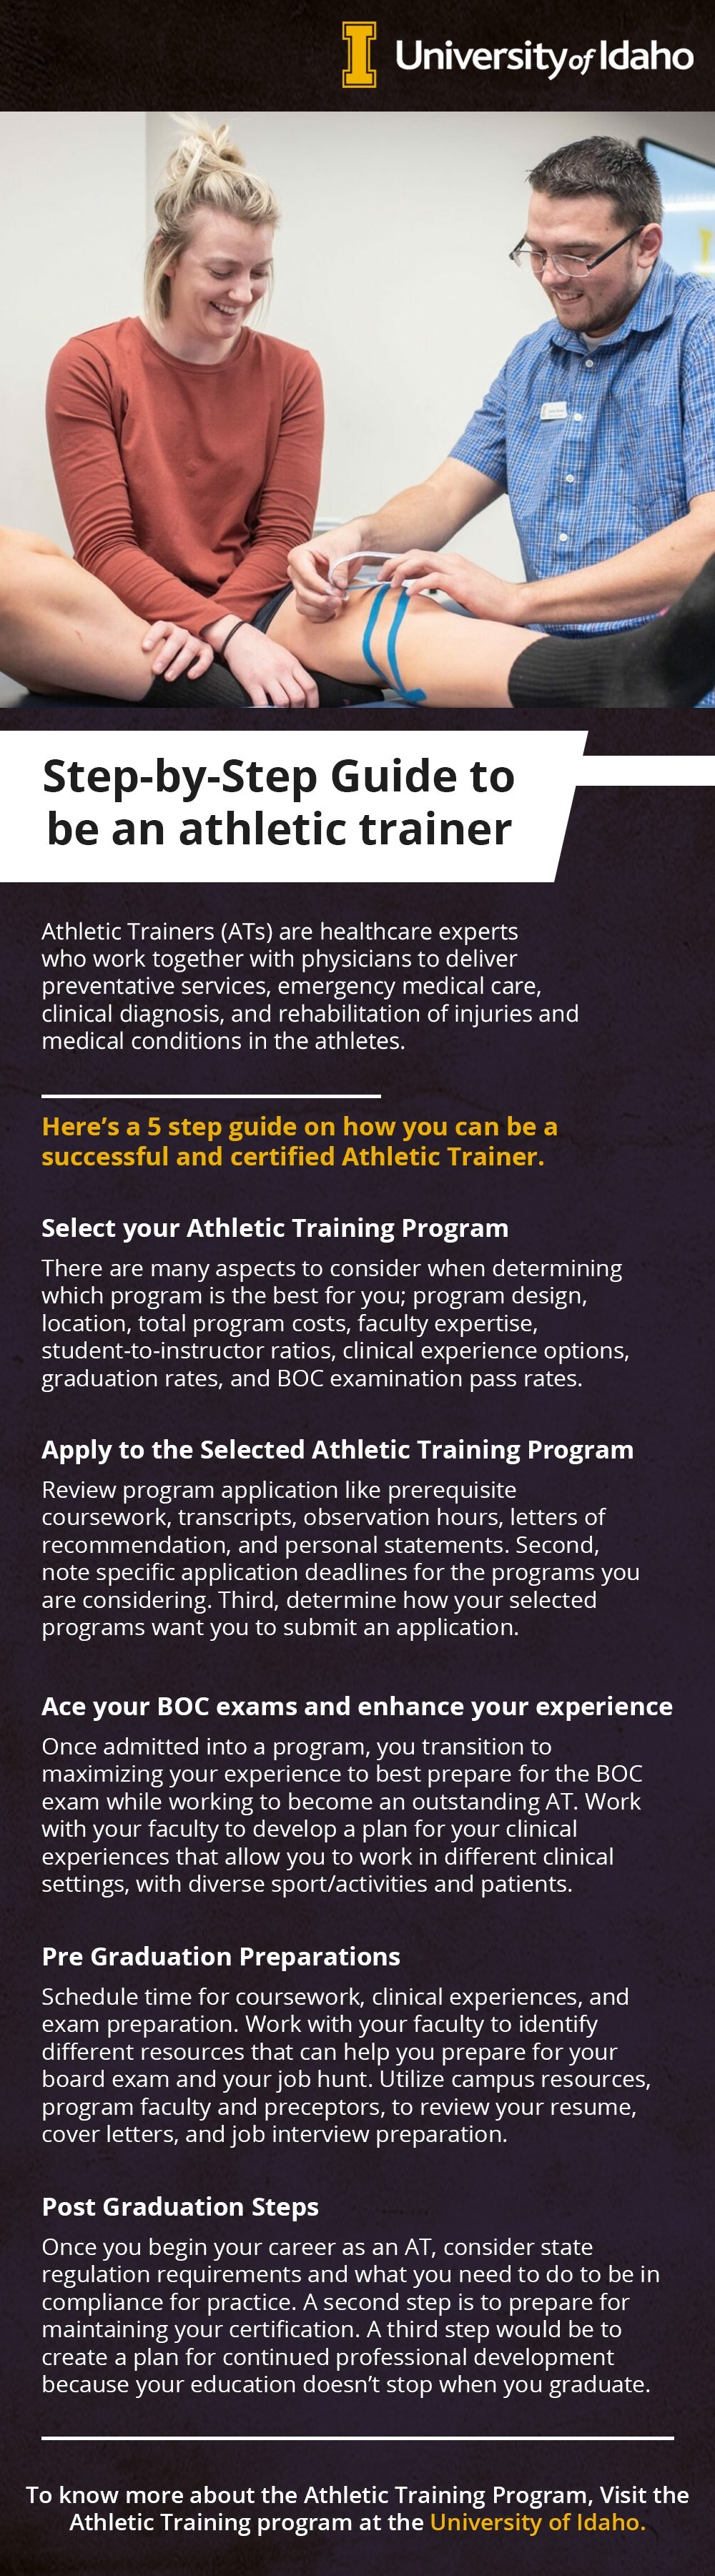 Step by Step guide to be an Athletic Trainer